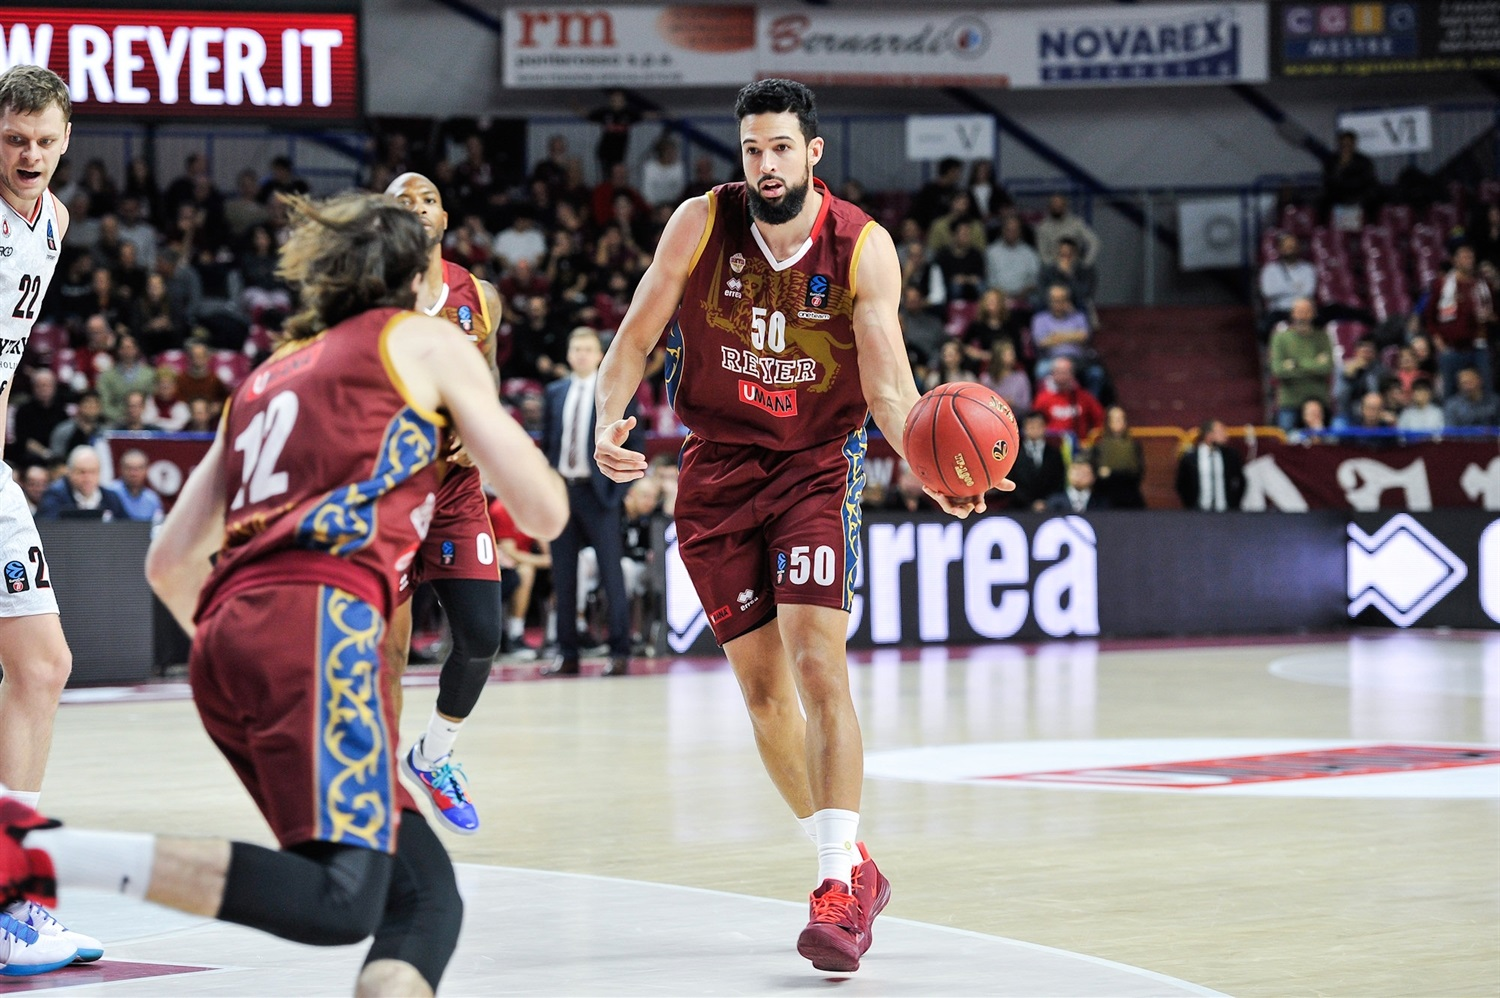 Mitchell Watt - Umana Reyer Venice (photo Reyer) - EC19